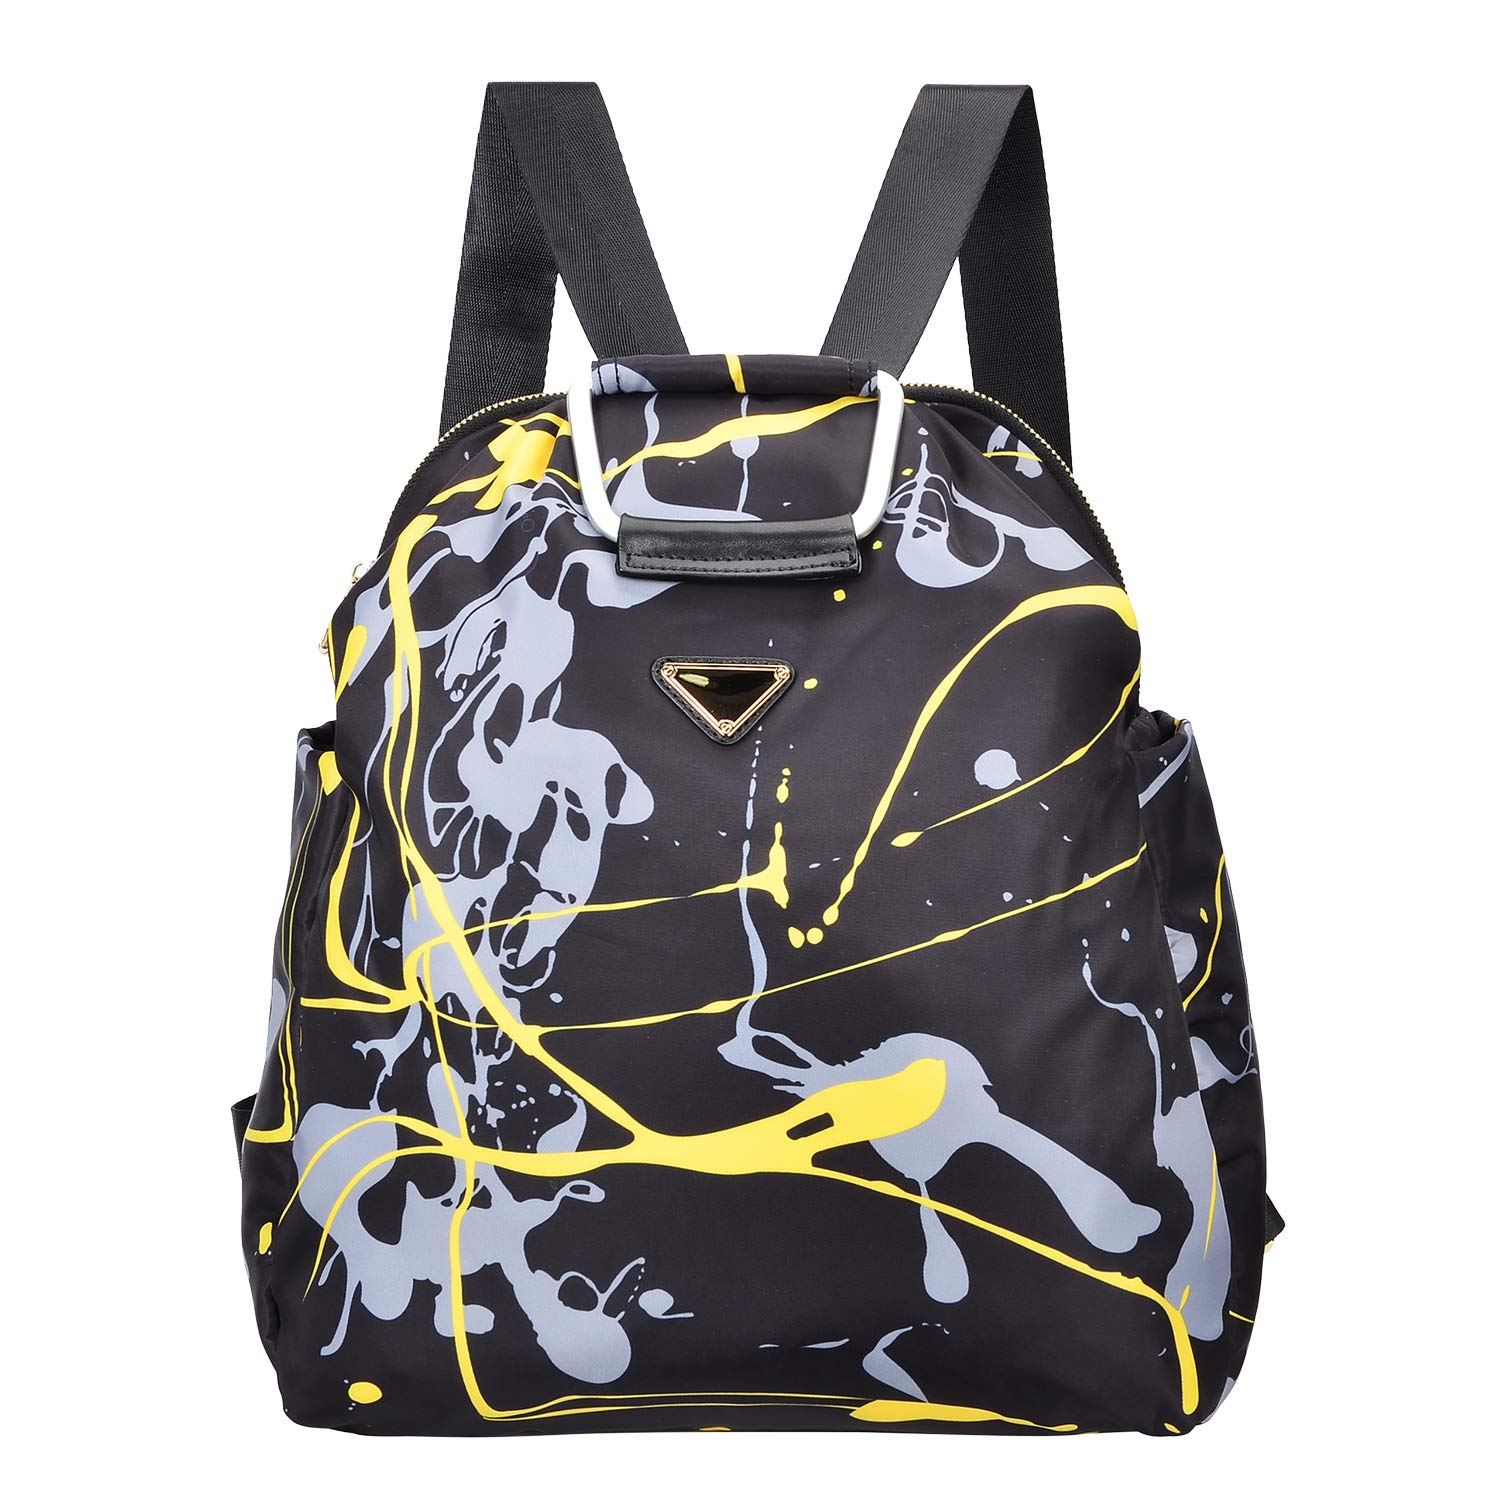 ALTOSY Water Resistant Fashion Metal Patch College Backpack Casual Daypack Unisex A32 Black//Golden US A32, Black//Golden